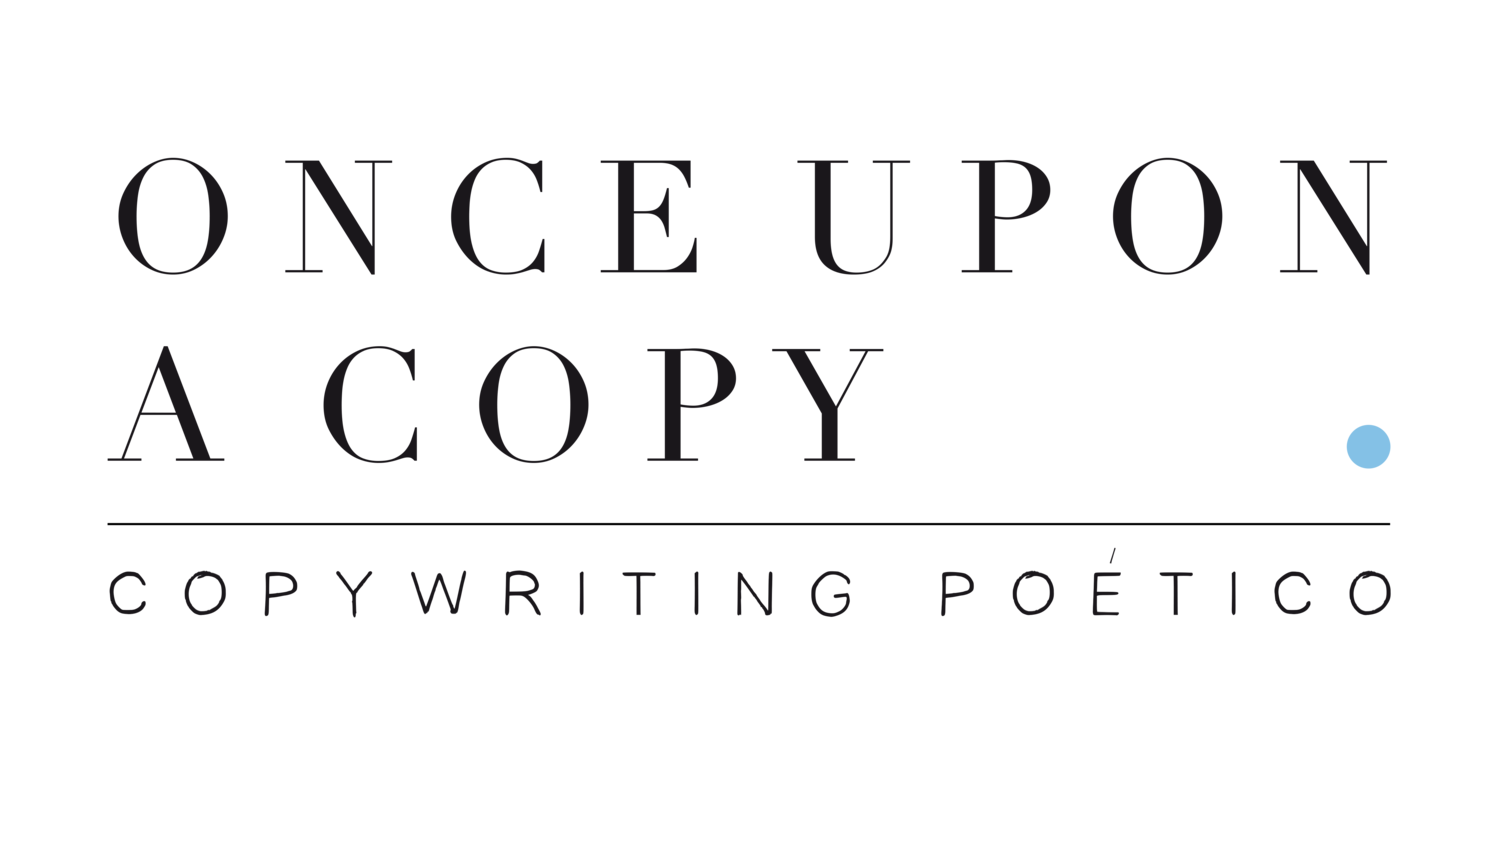 Once Upon A Copy - Copywriting poético